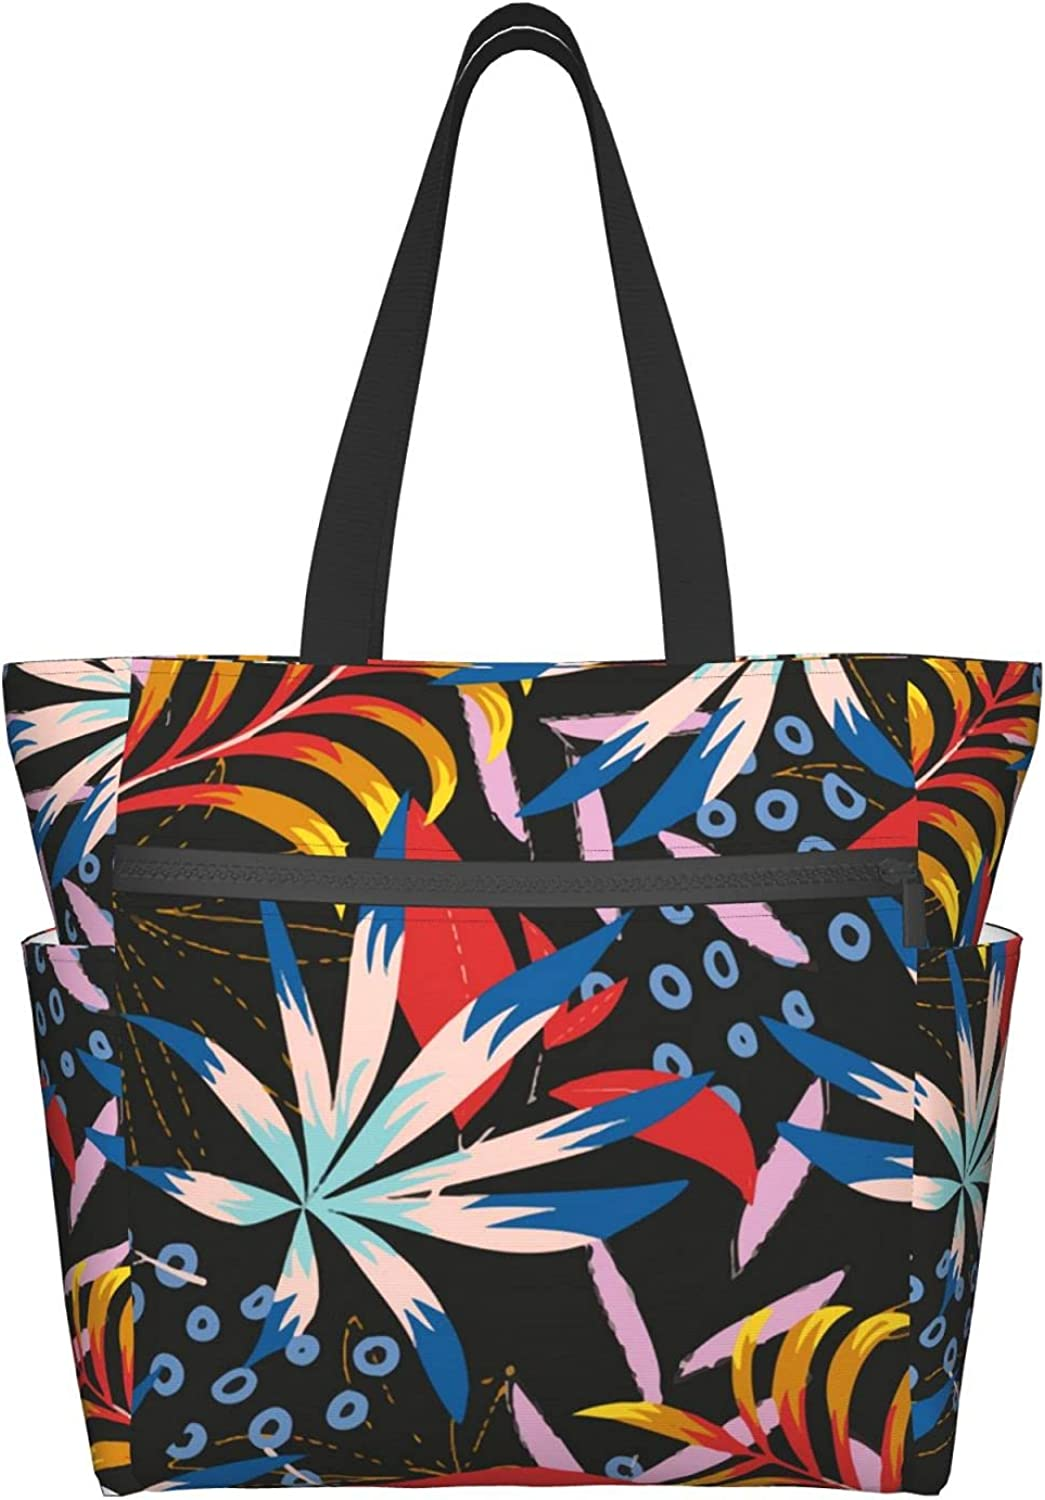 Tote Max 48% OFF Bag with Zipper for Women Phoenix Mall Colorful P Tropical Summer Leaves